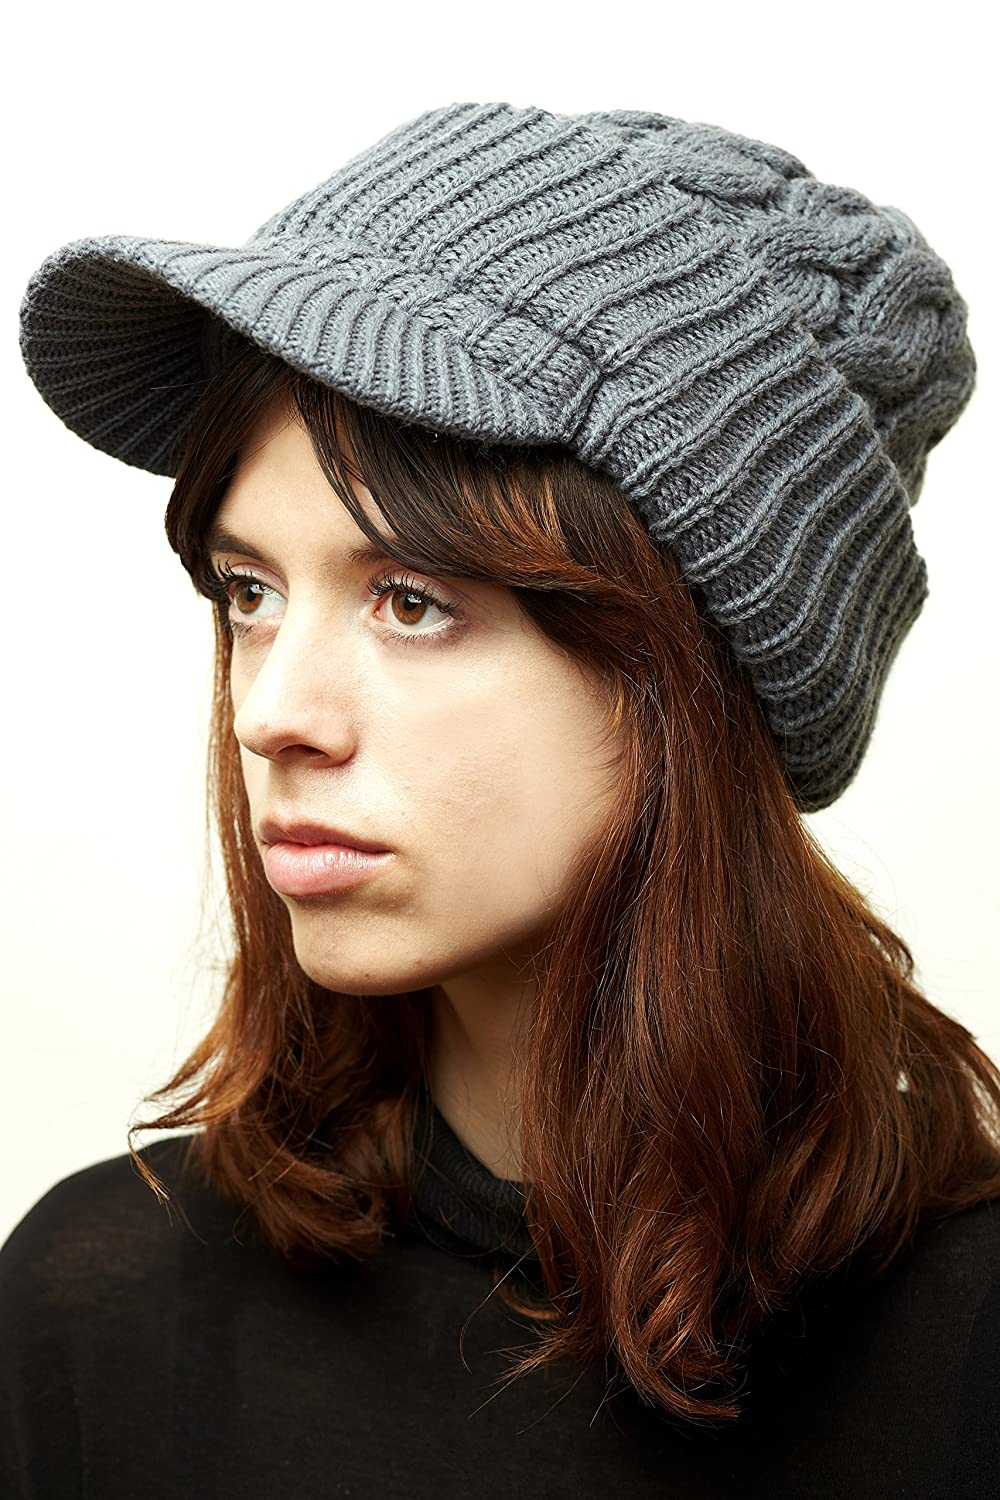 Newsboy Cable Knitted Hat for Women in Black, Charcoal, Light Grey, Off White Black_Heavyweight) 7headz_JP200BLK_HW